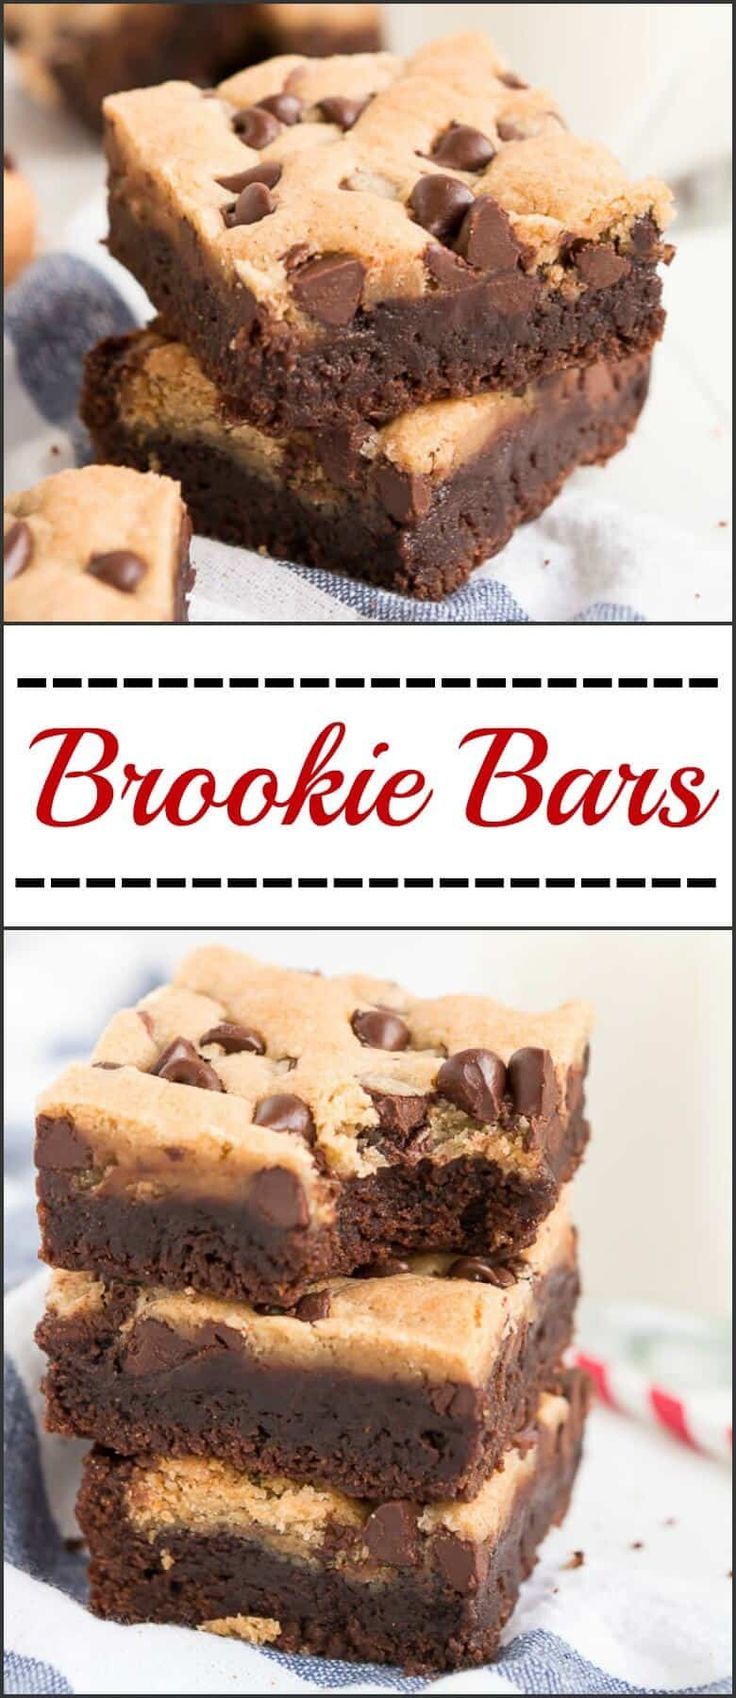 You can enjoy a fudgy brownie and a chewy chocolate chip cookie with each bite of these awesome, scrumptious Brookie Bars! via @ohsweetbasil